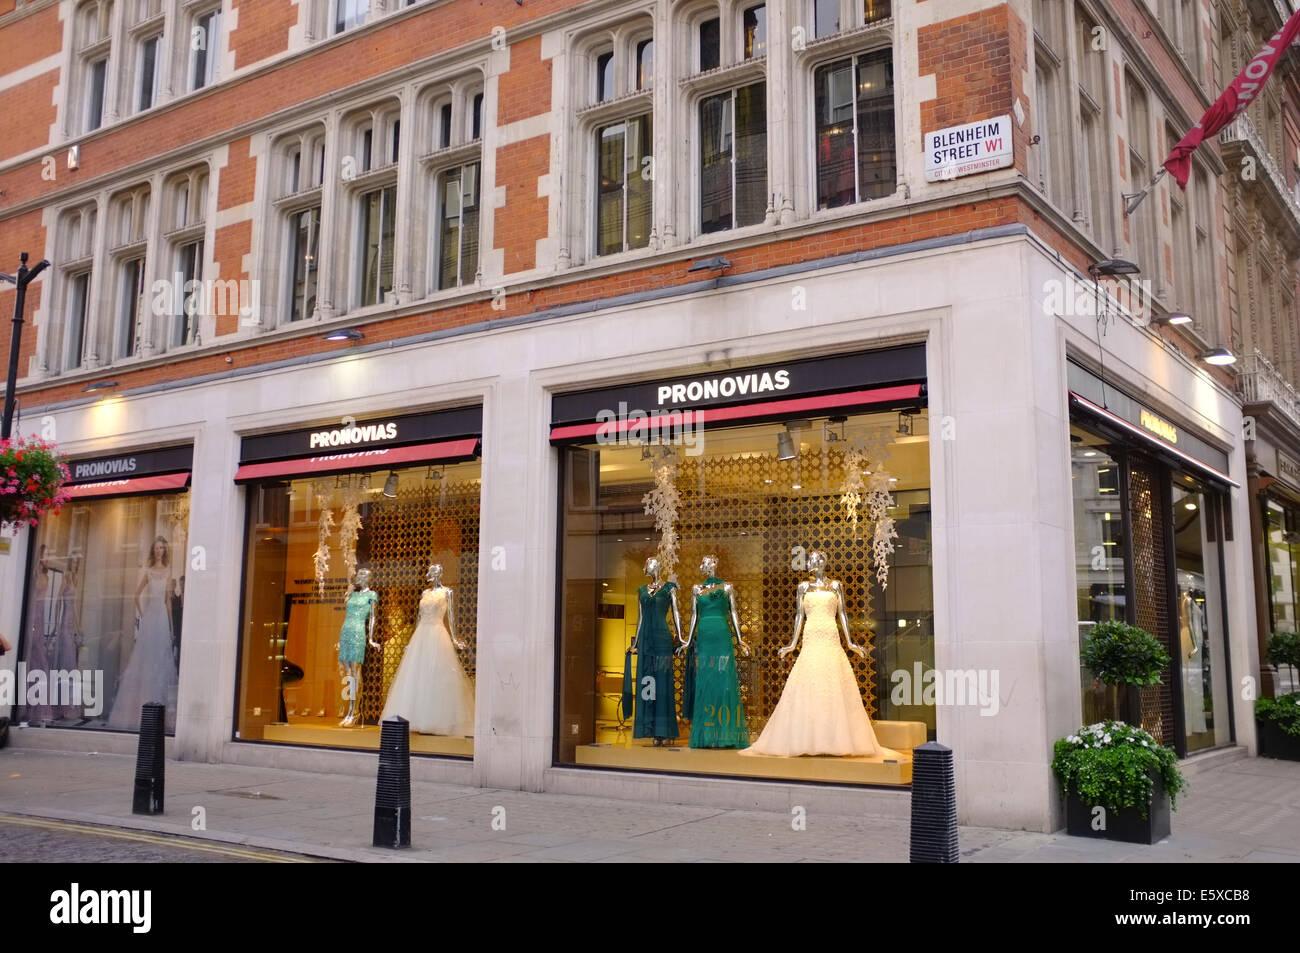 Pronovias wedding dress shop in london stock photo for Wedding dress shops in oklahoma city